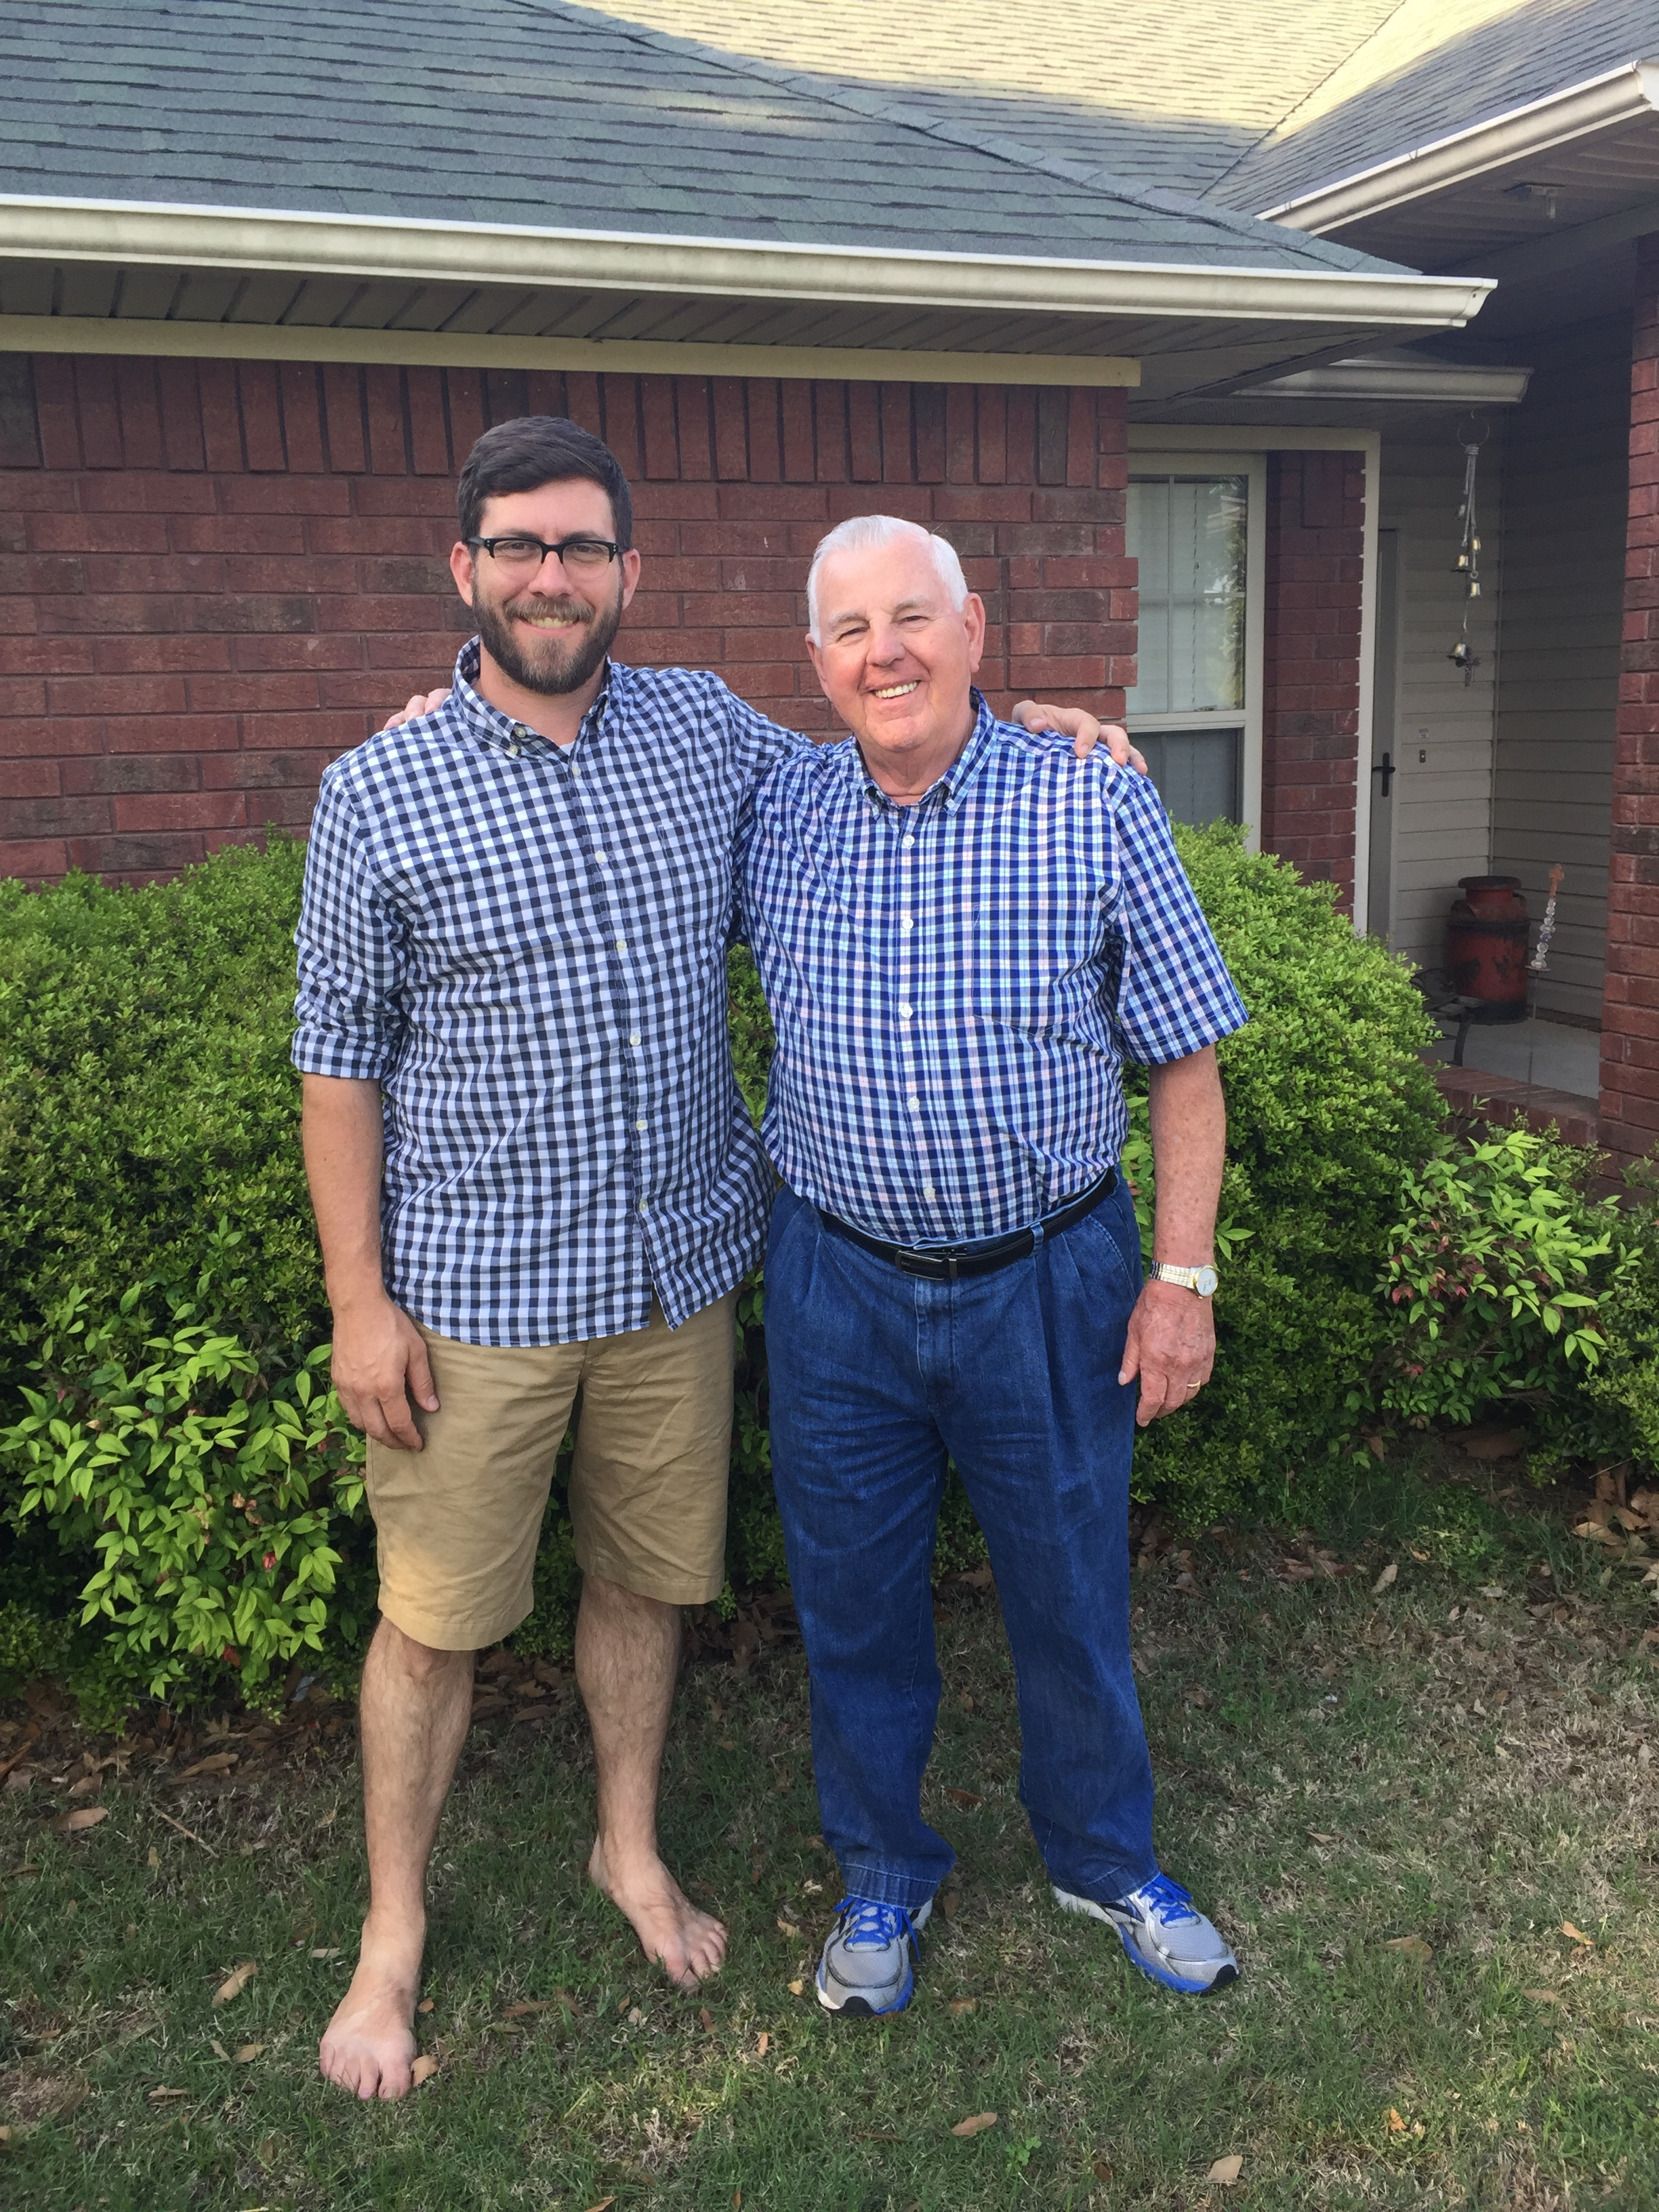 Me and Gramps